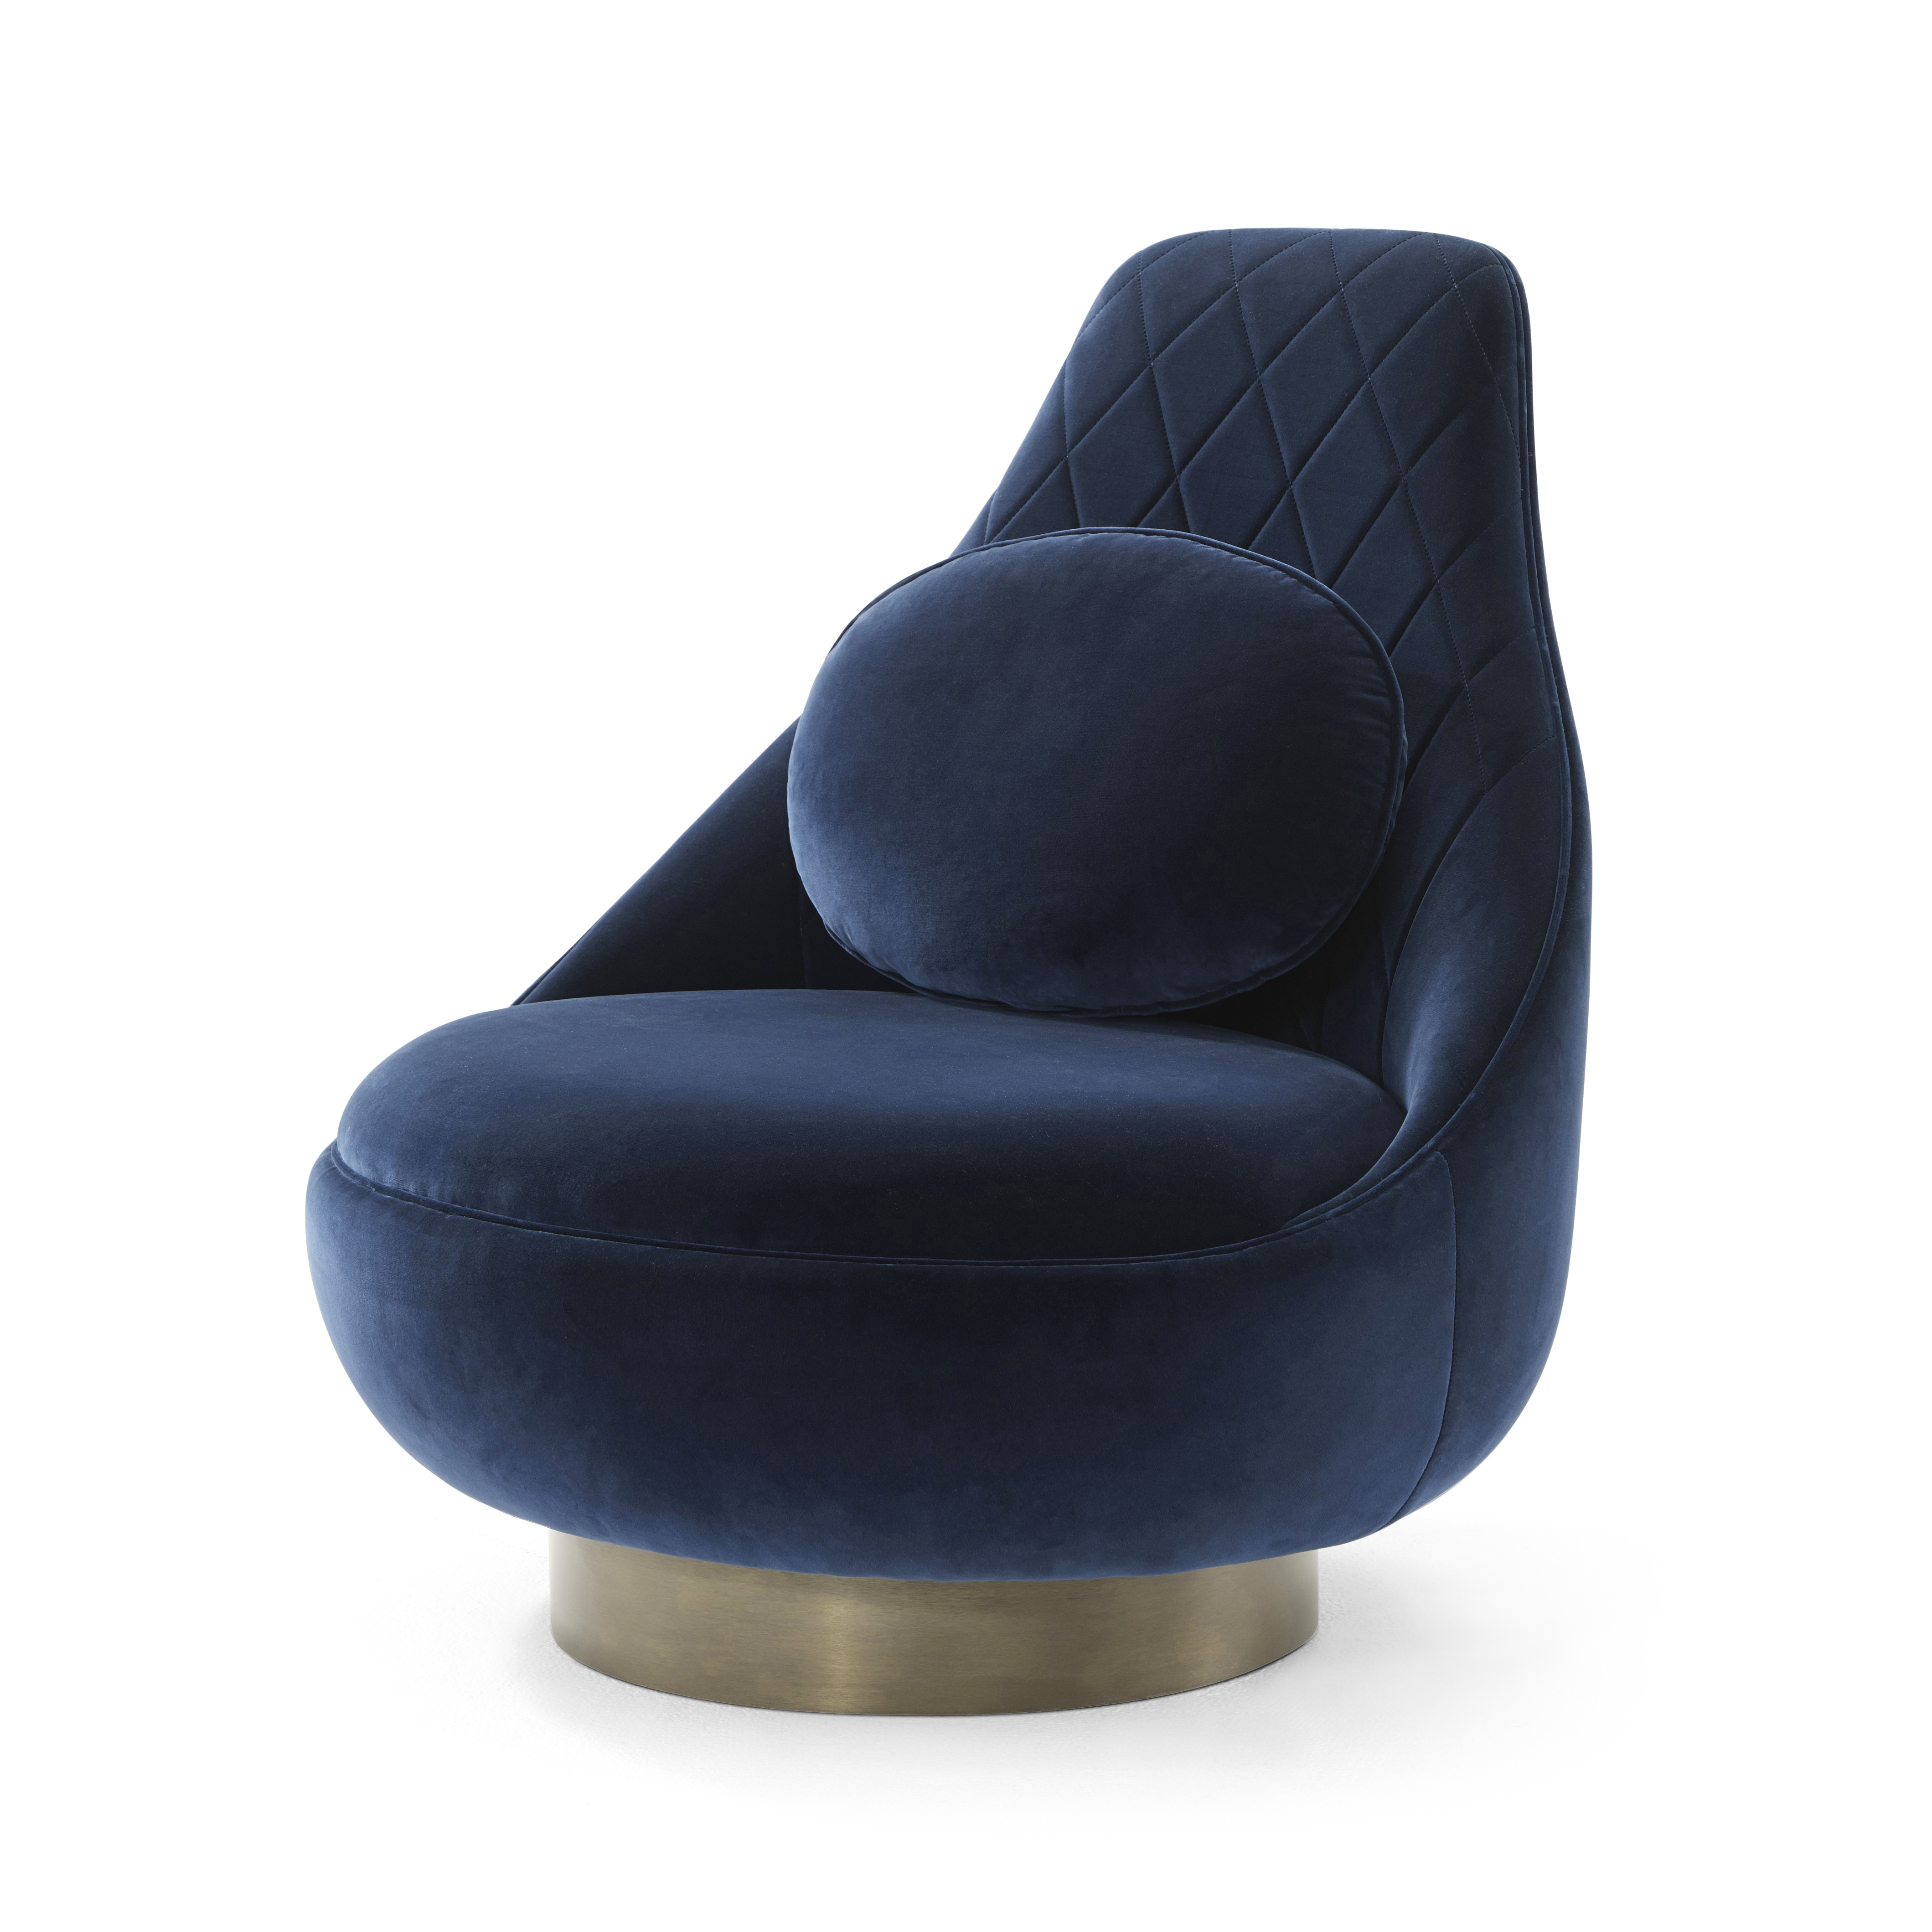 Theodore-Alexander-Embrace-swivel-chair